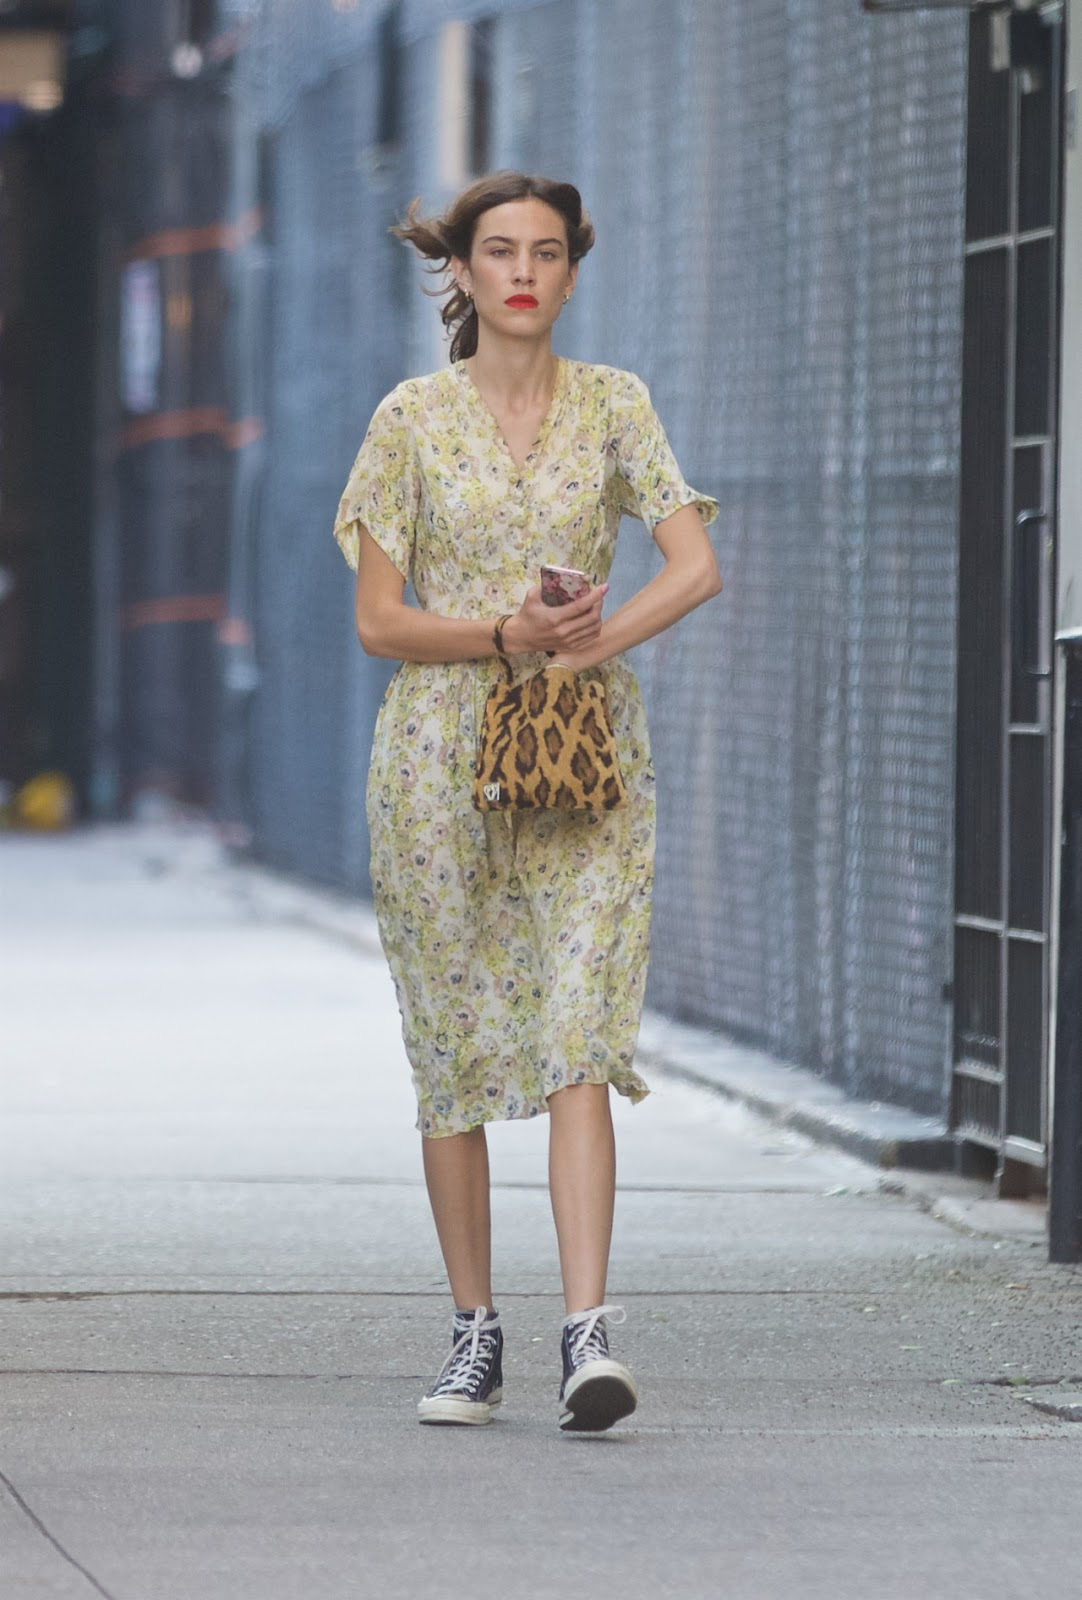 Alexa Chung Wears Vintage Florals Out in NYC